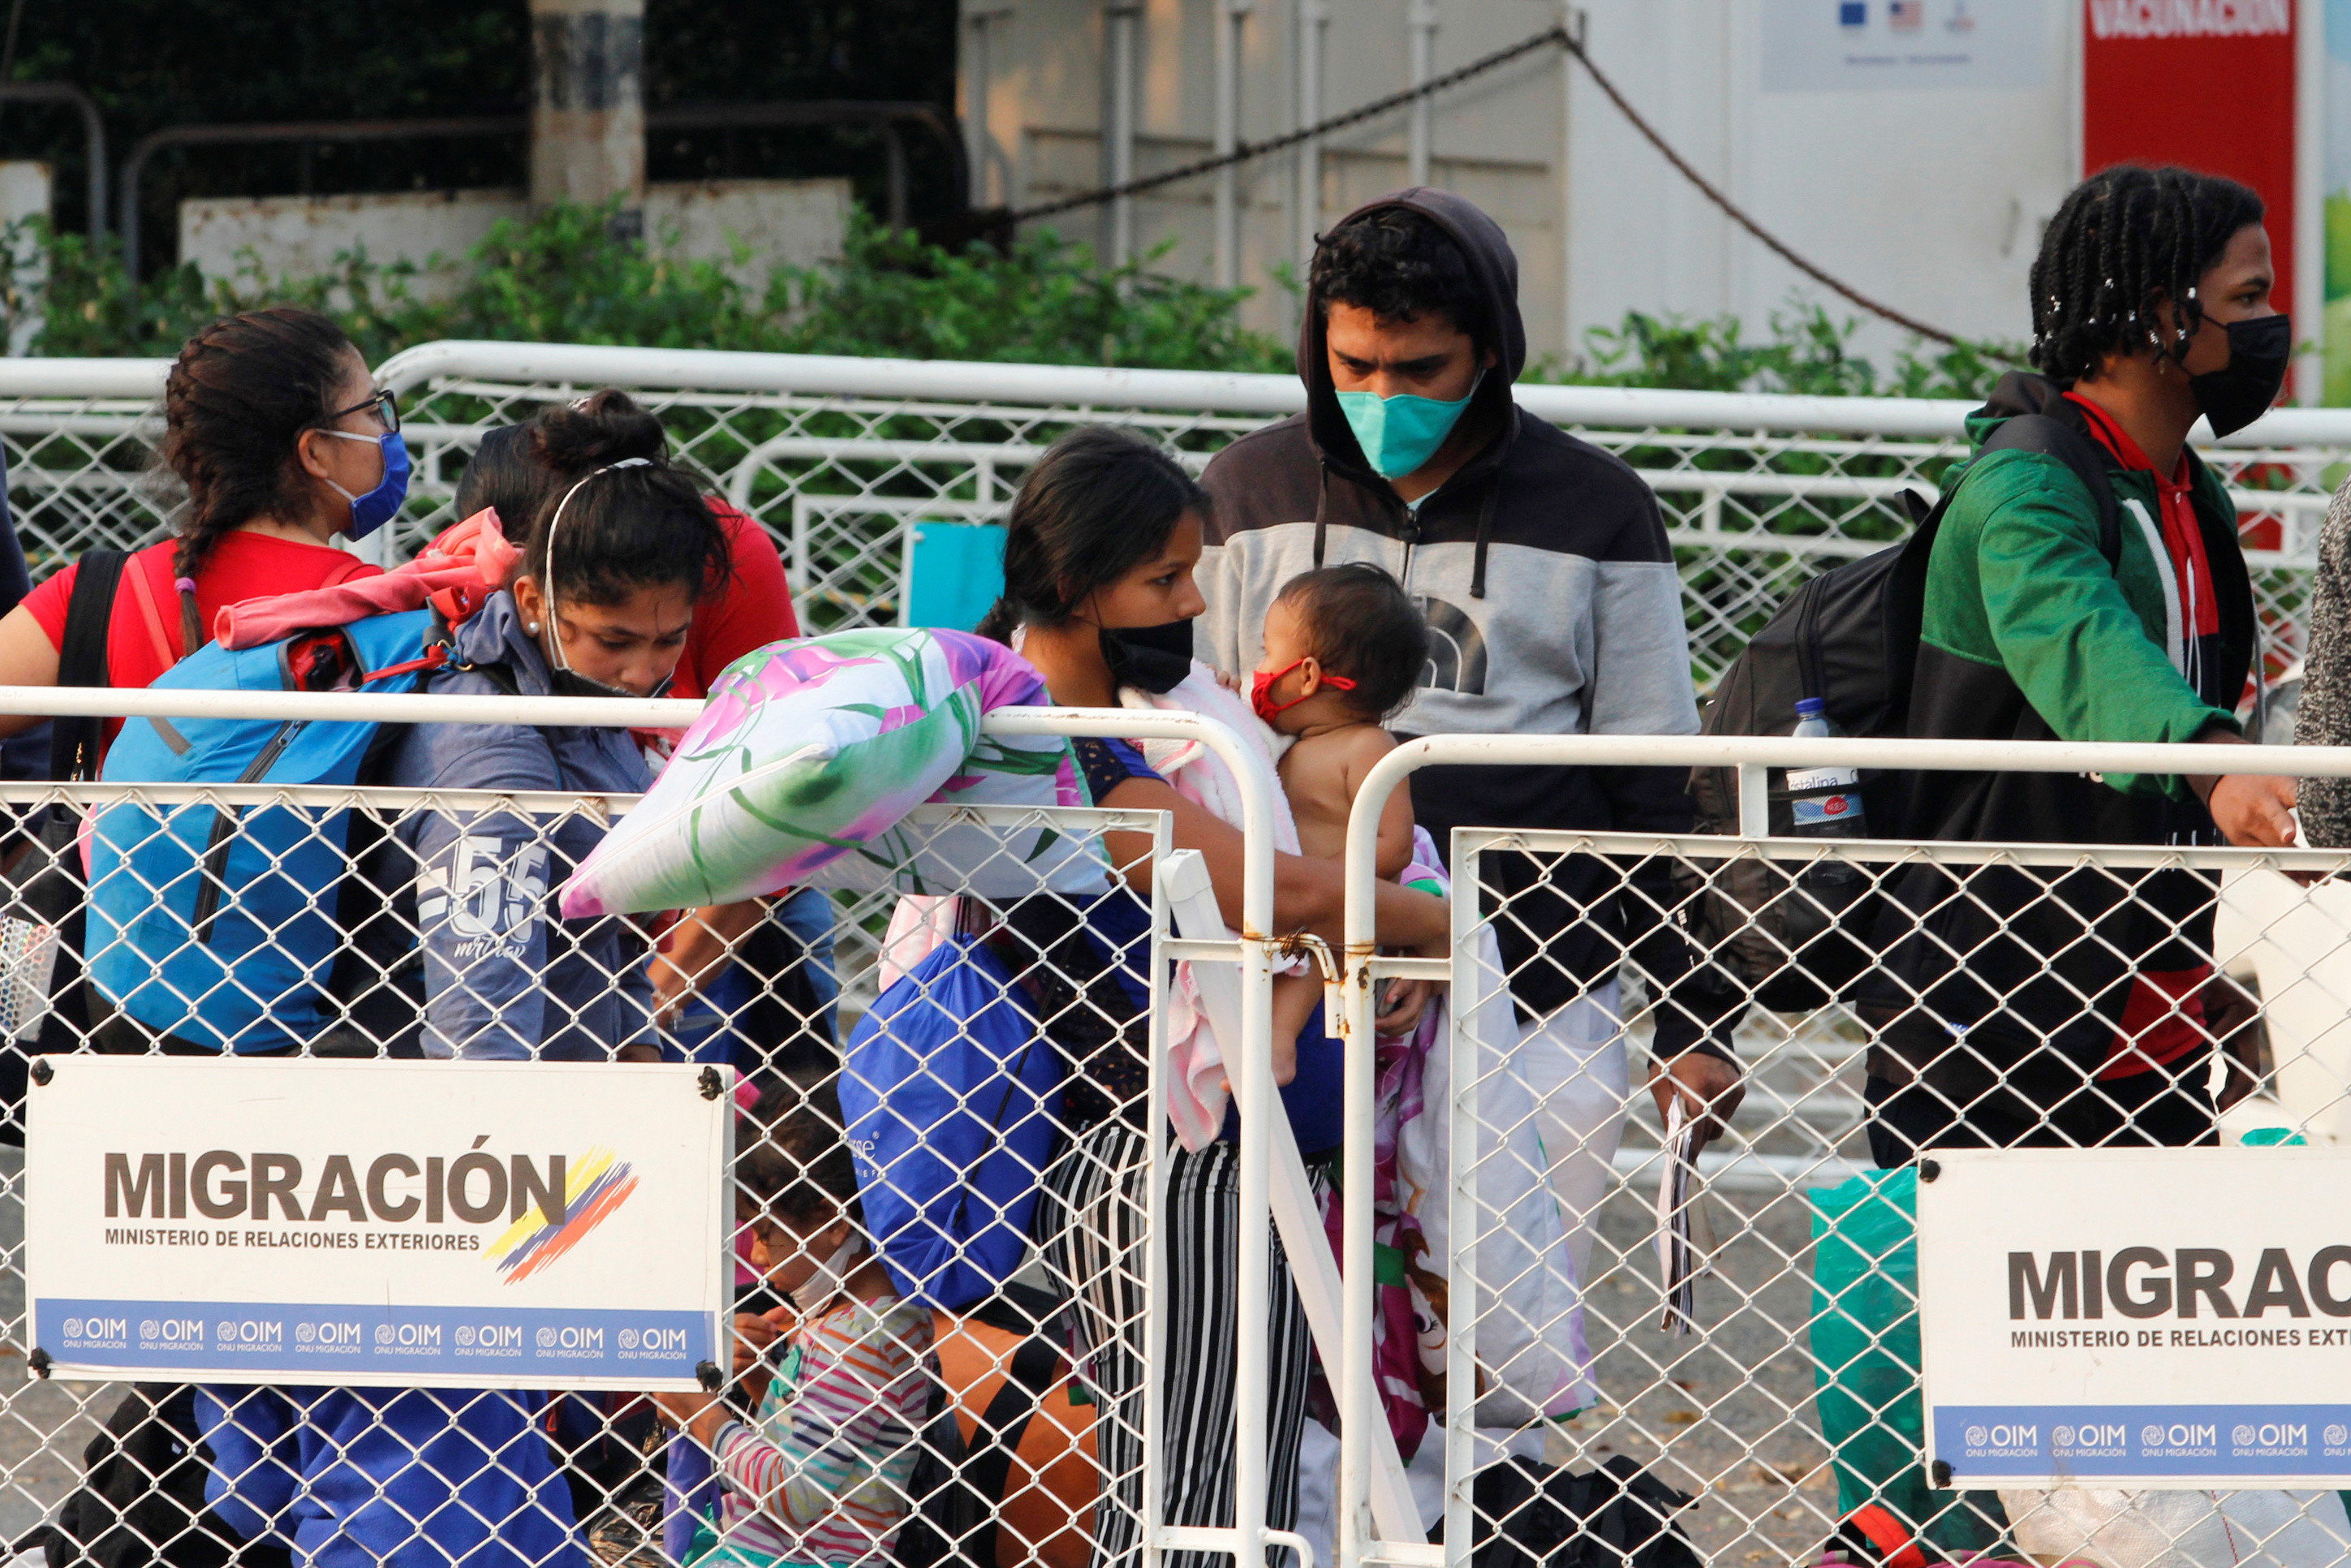 Venezuelan migrants wearing face masks line up at the Simon Bolivar border bridge after travelling on buses assigned by Colombian Migration office for their return to Venezuela, amid the coronavirus disease (COVID-19) outbreak, in Cucuta, Colombia April 15, 2020. REUTERS/Mario Caicedo. NO RESALES. NO ARCHIVES. - RC2C5G9U0BRL